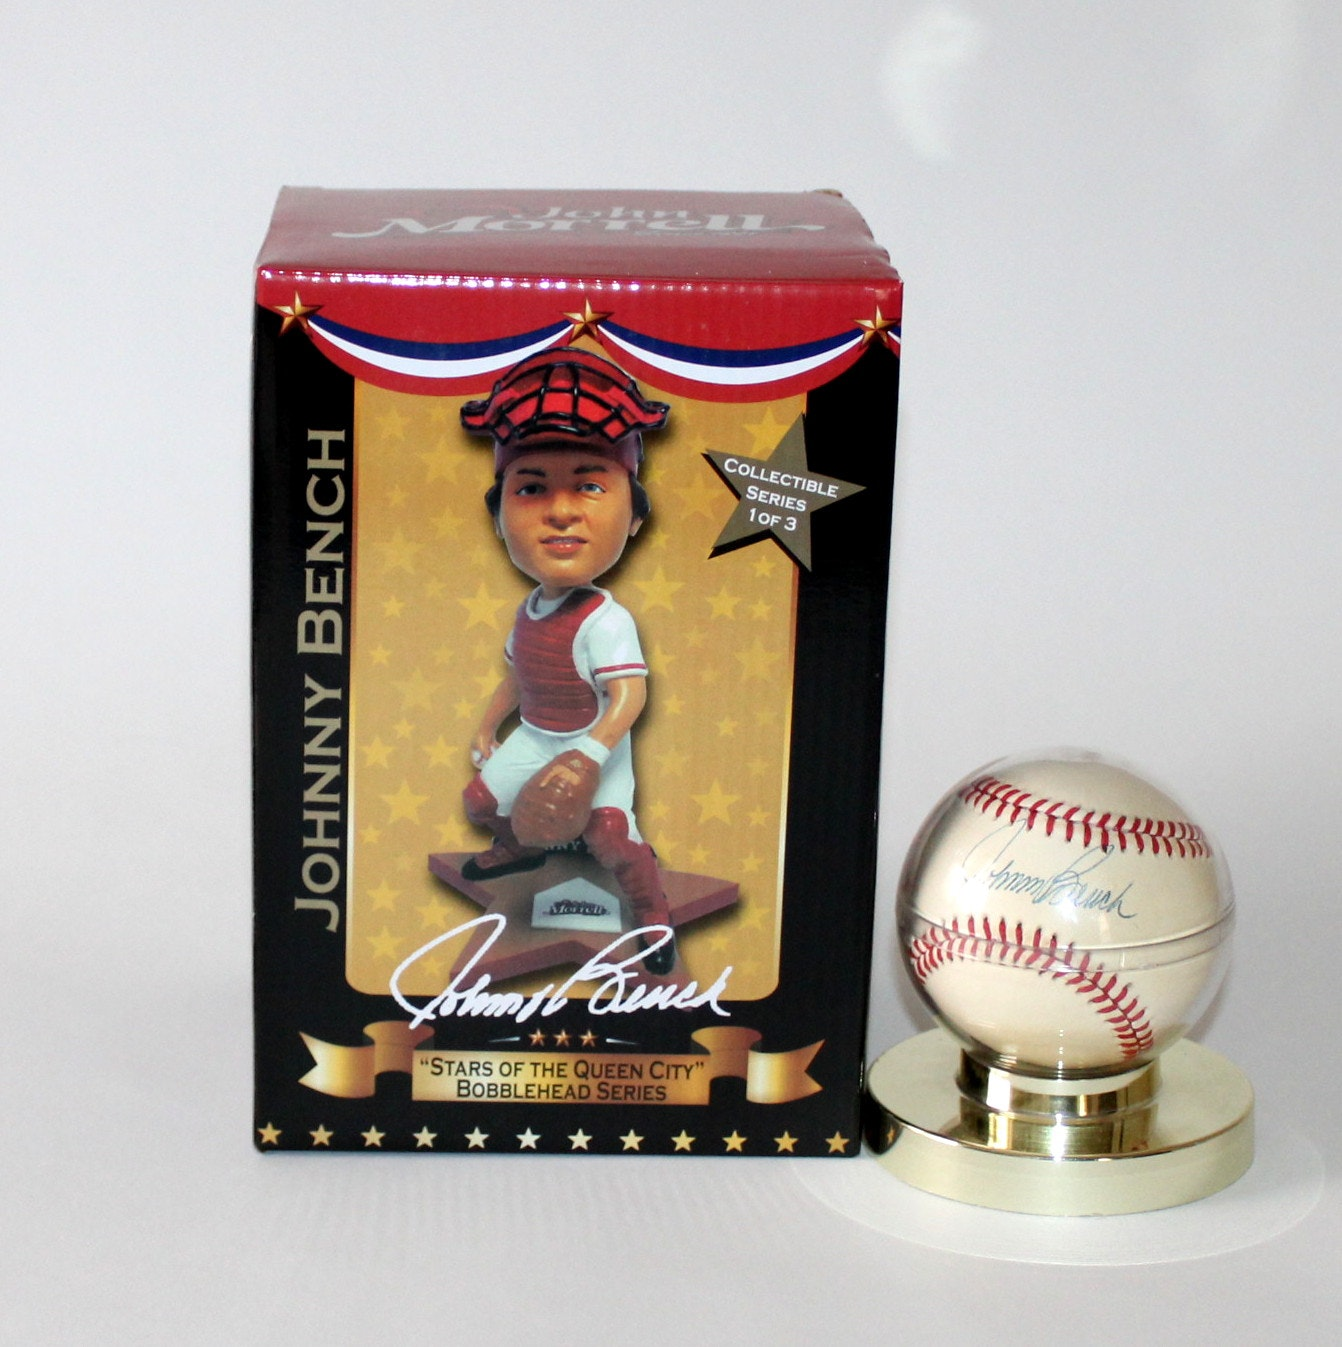 Johnny Bench Autographed Baseball Part - 30: Johnny Bench Autographed Baseball And Bobblehead ...